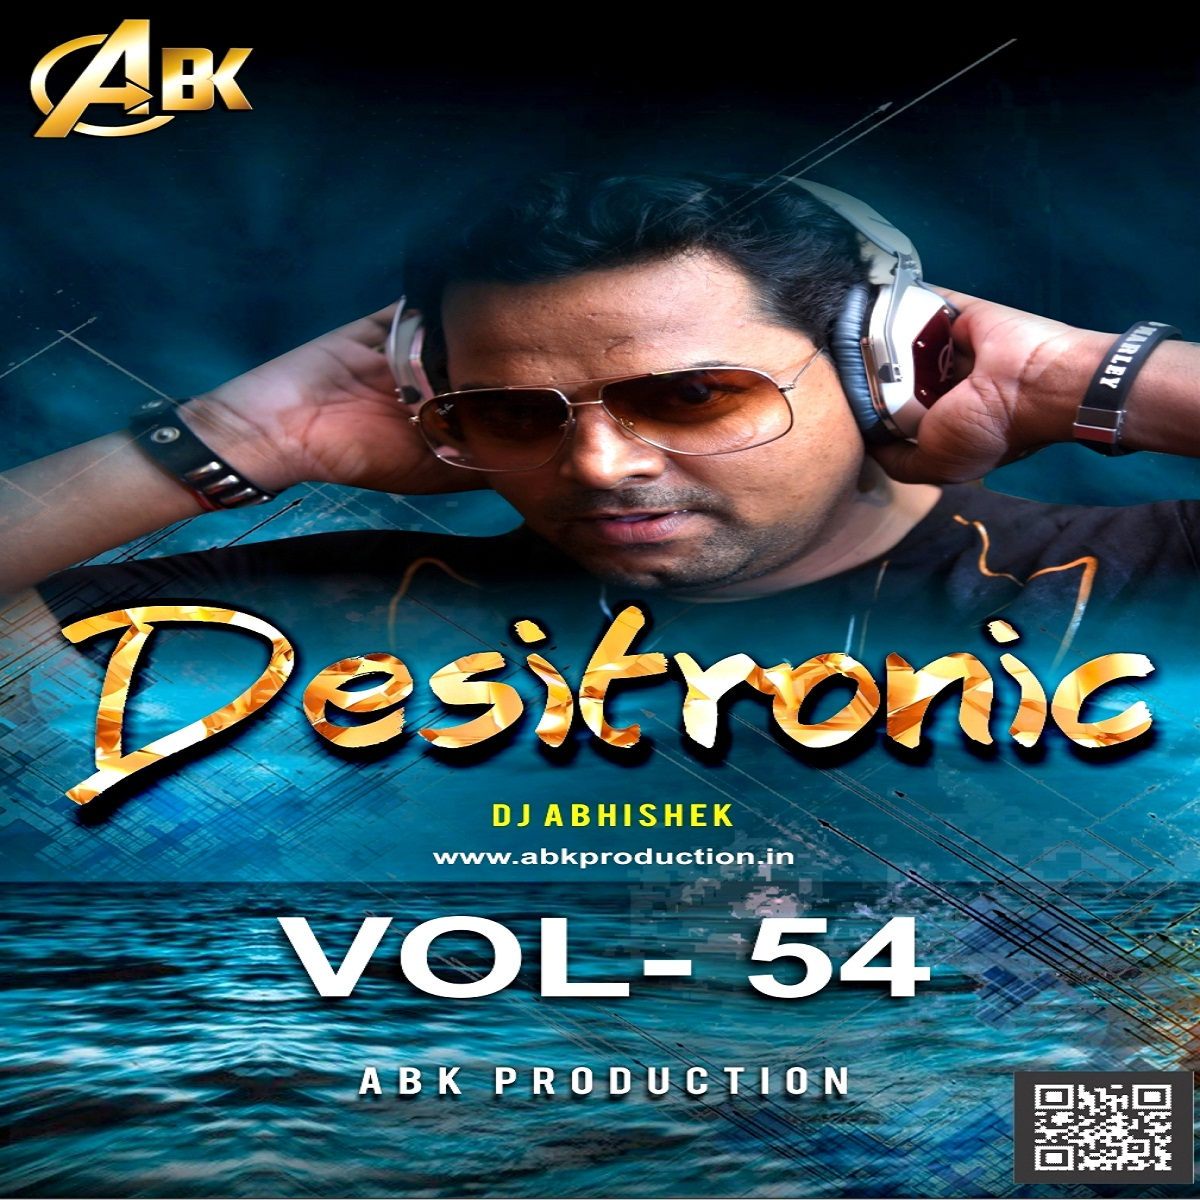 ABK Production - Desitronic Vol.54